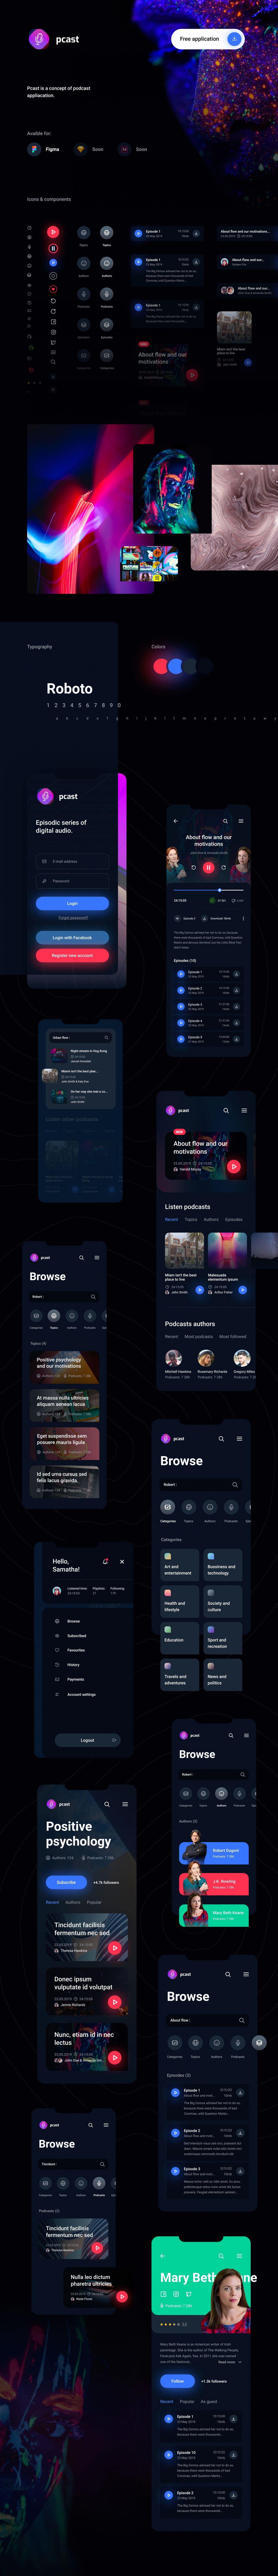 pcast - Podcast App for Figma - pcast is a concept of podcast application. Freebie provides 12 screens and customizable components. pcast comes in Figma file format, which means that you can scale and customize each element easily.